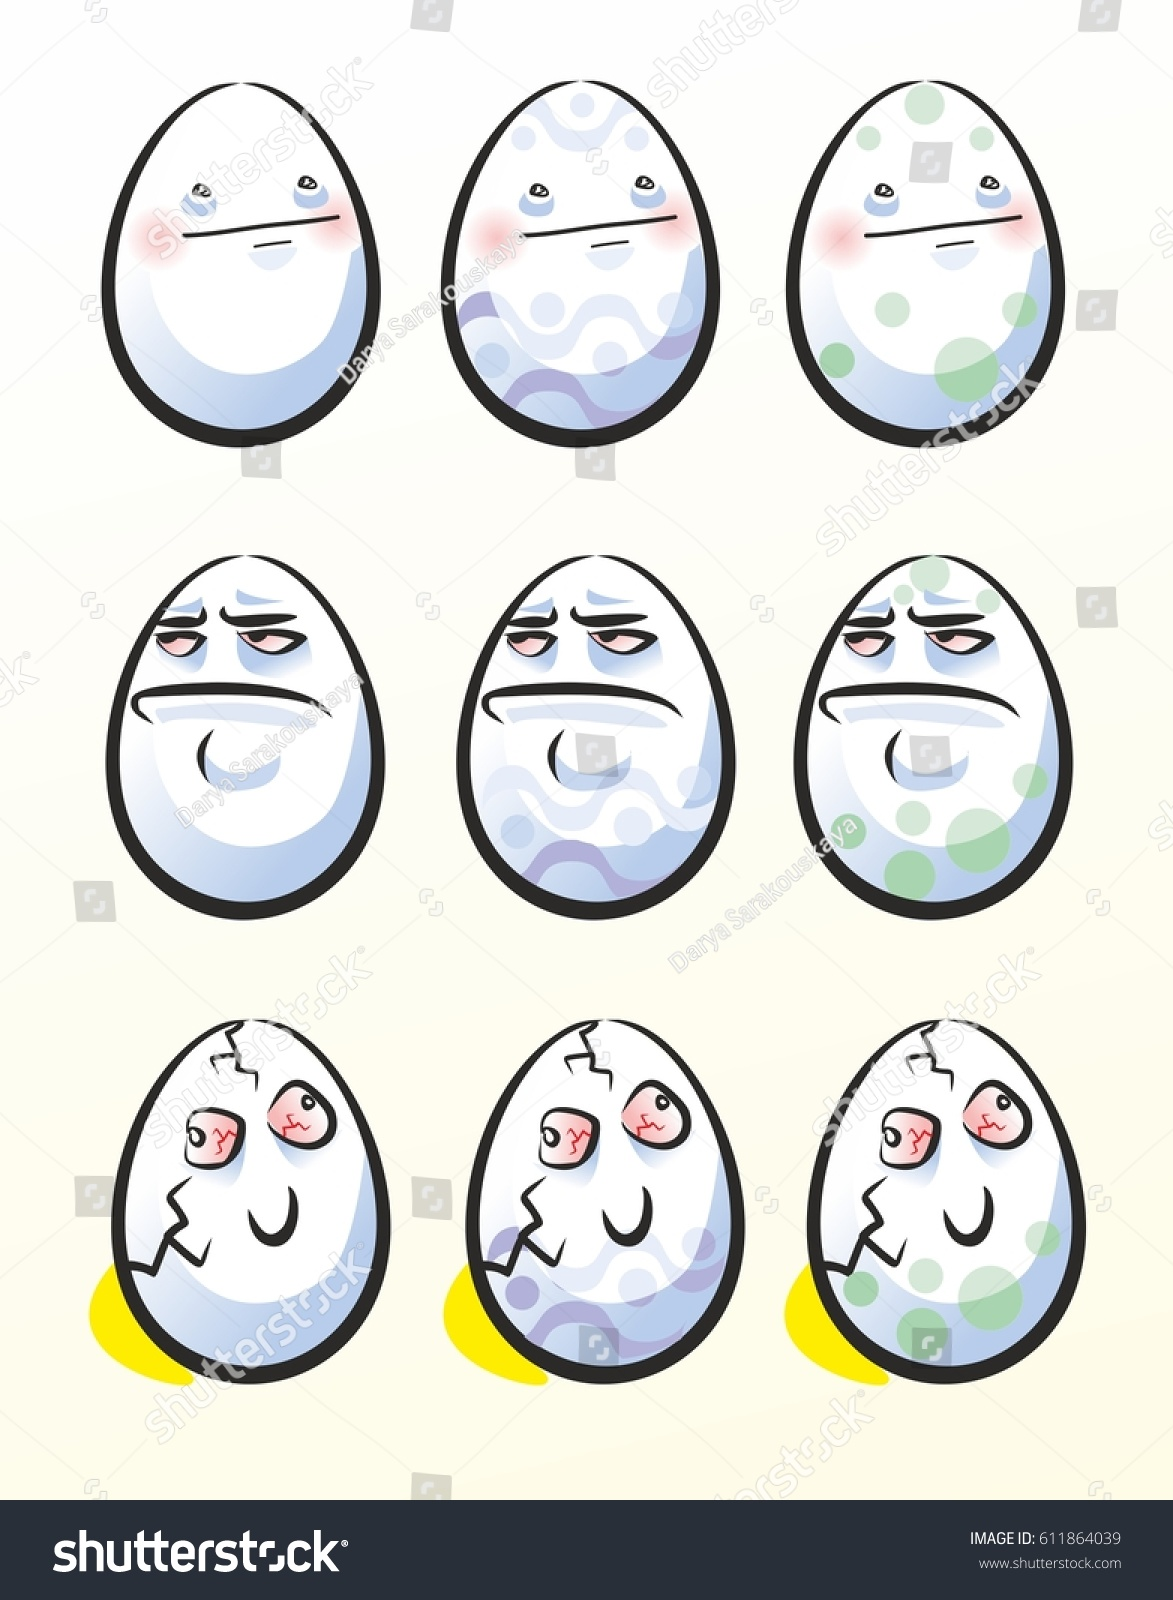 Easter egg on bright background trollface stock vector hd royalty easter egg on bright background trollface eggs internet meme character voltagebd Image collections